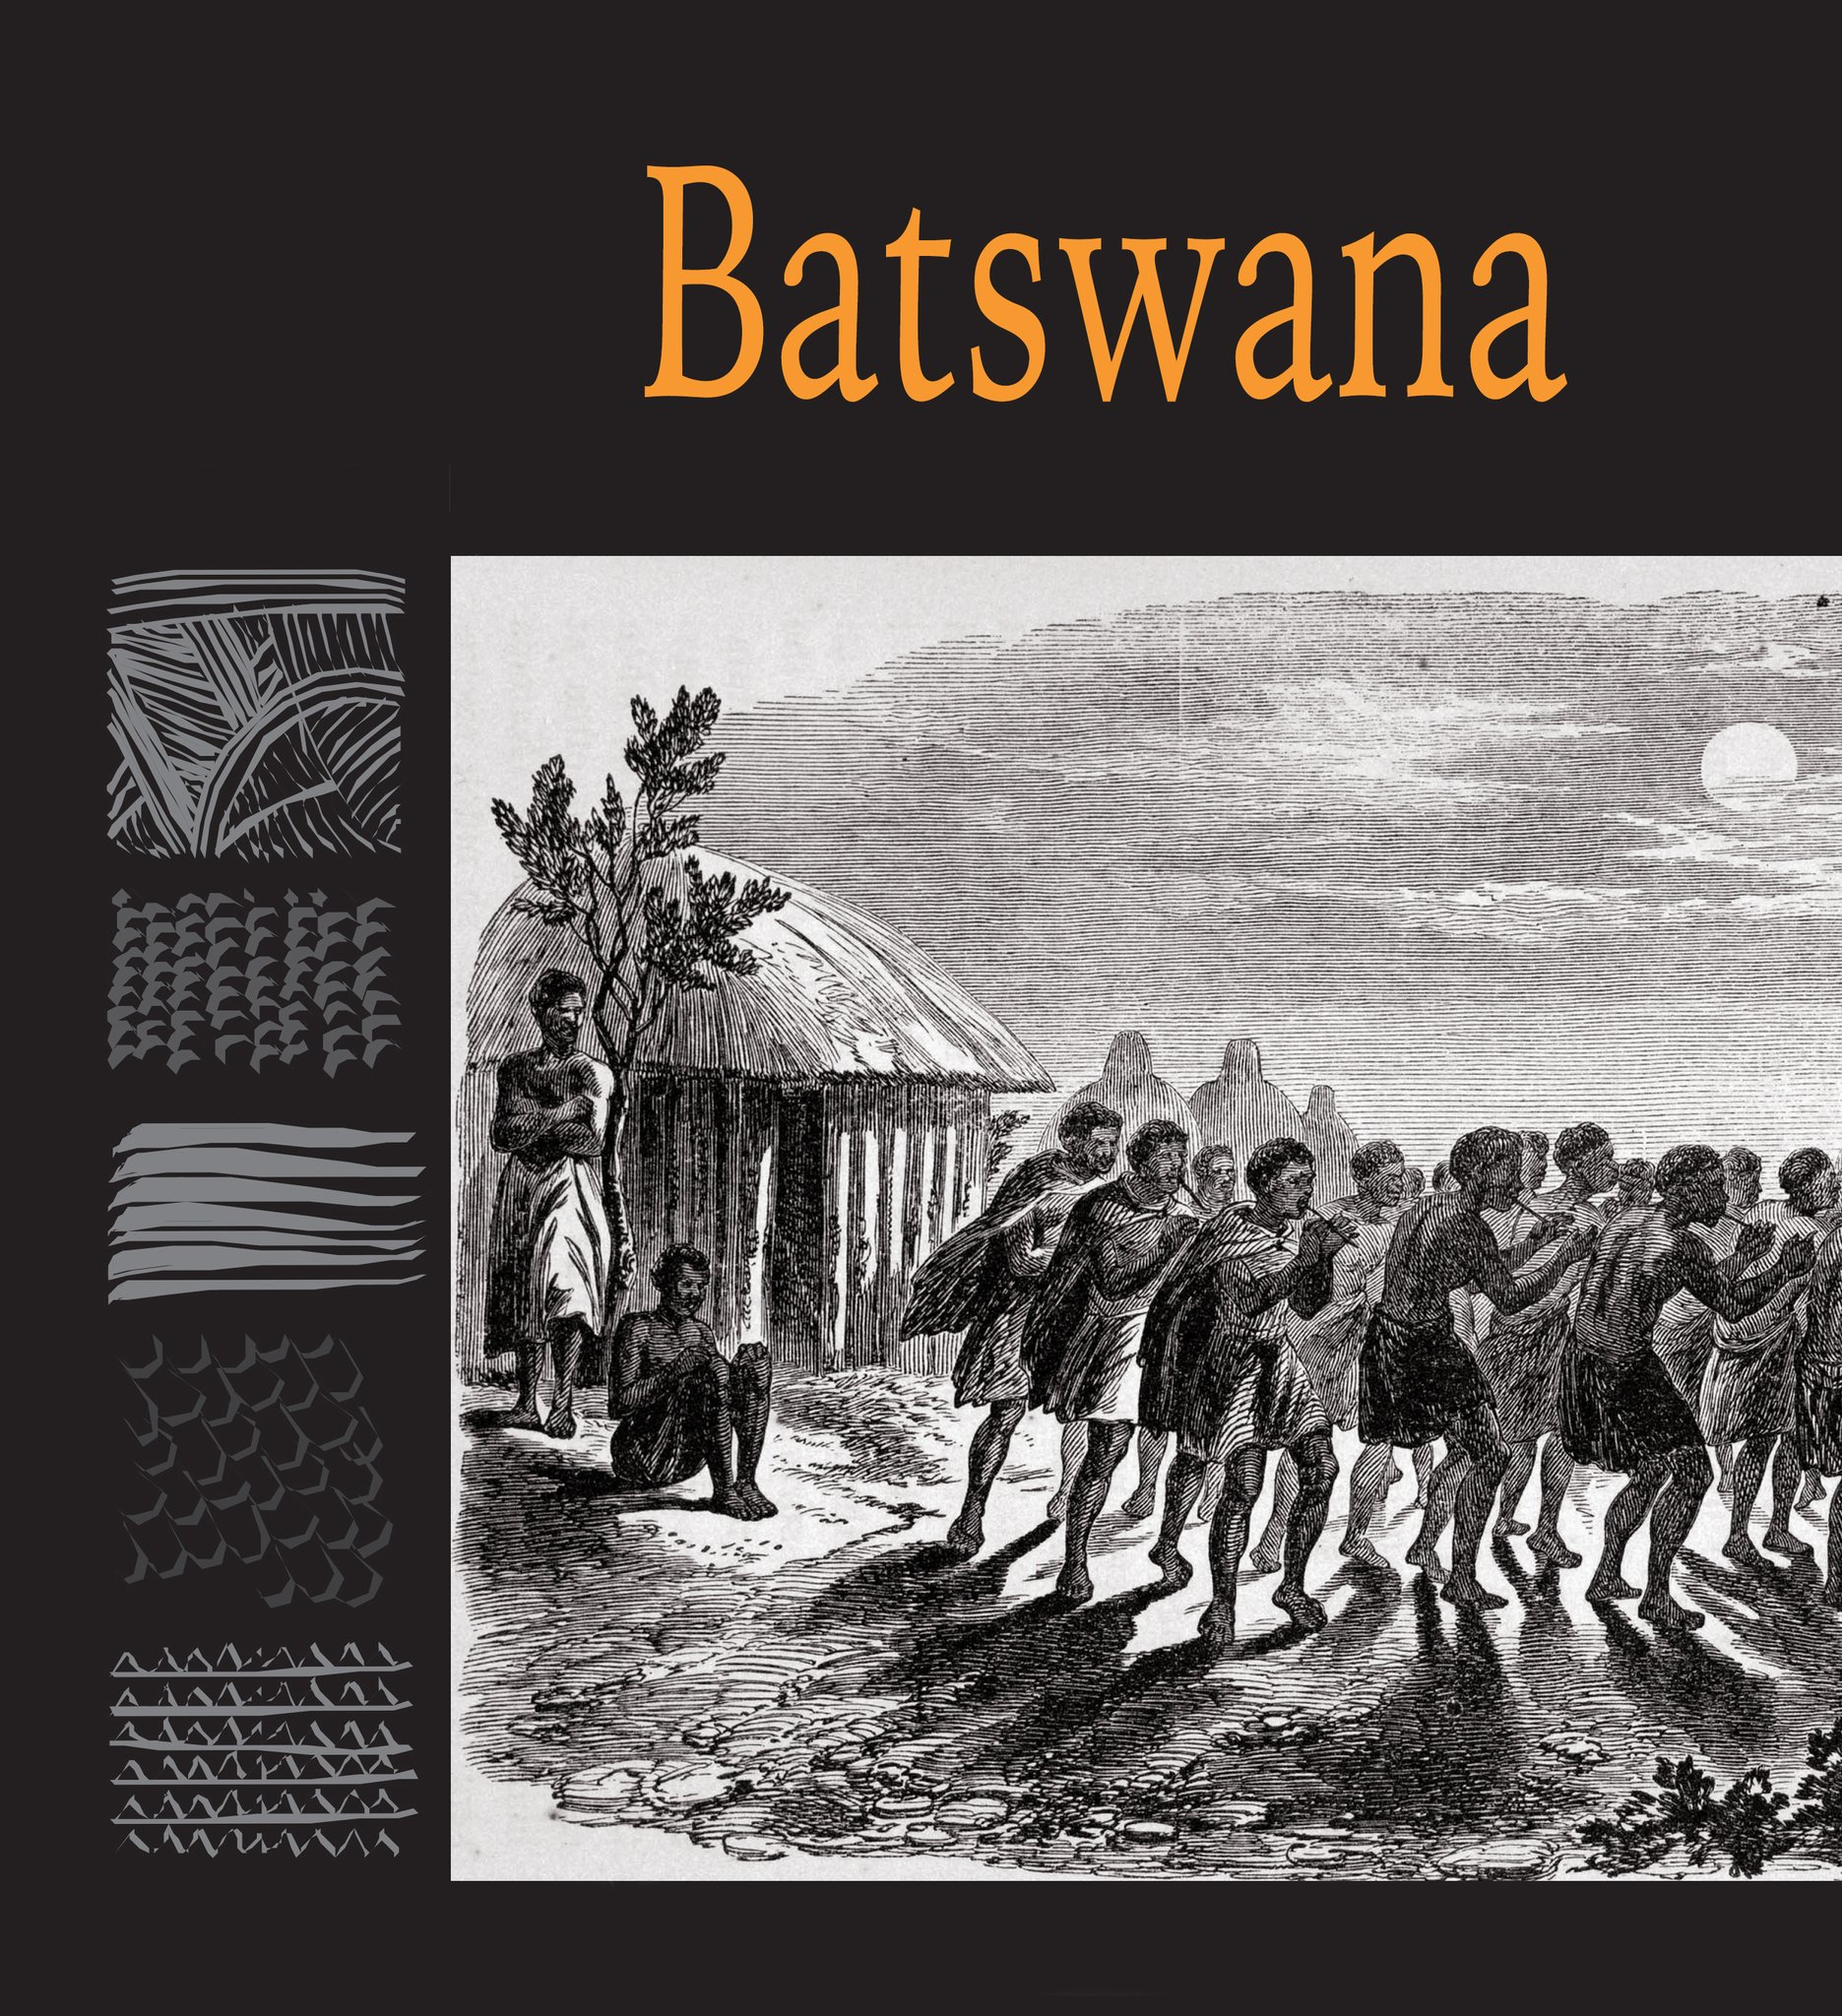 Chapter 7 - Batswana - 'Traditional Music of South Africa'